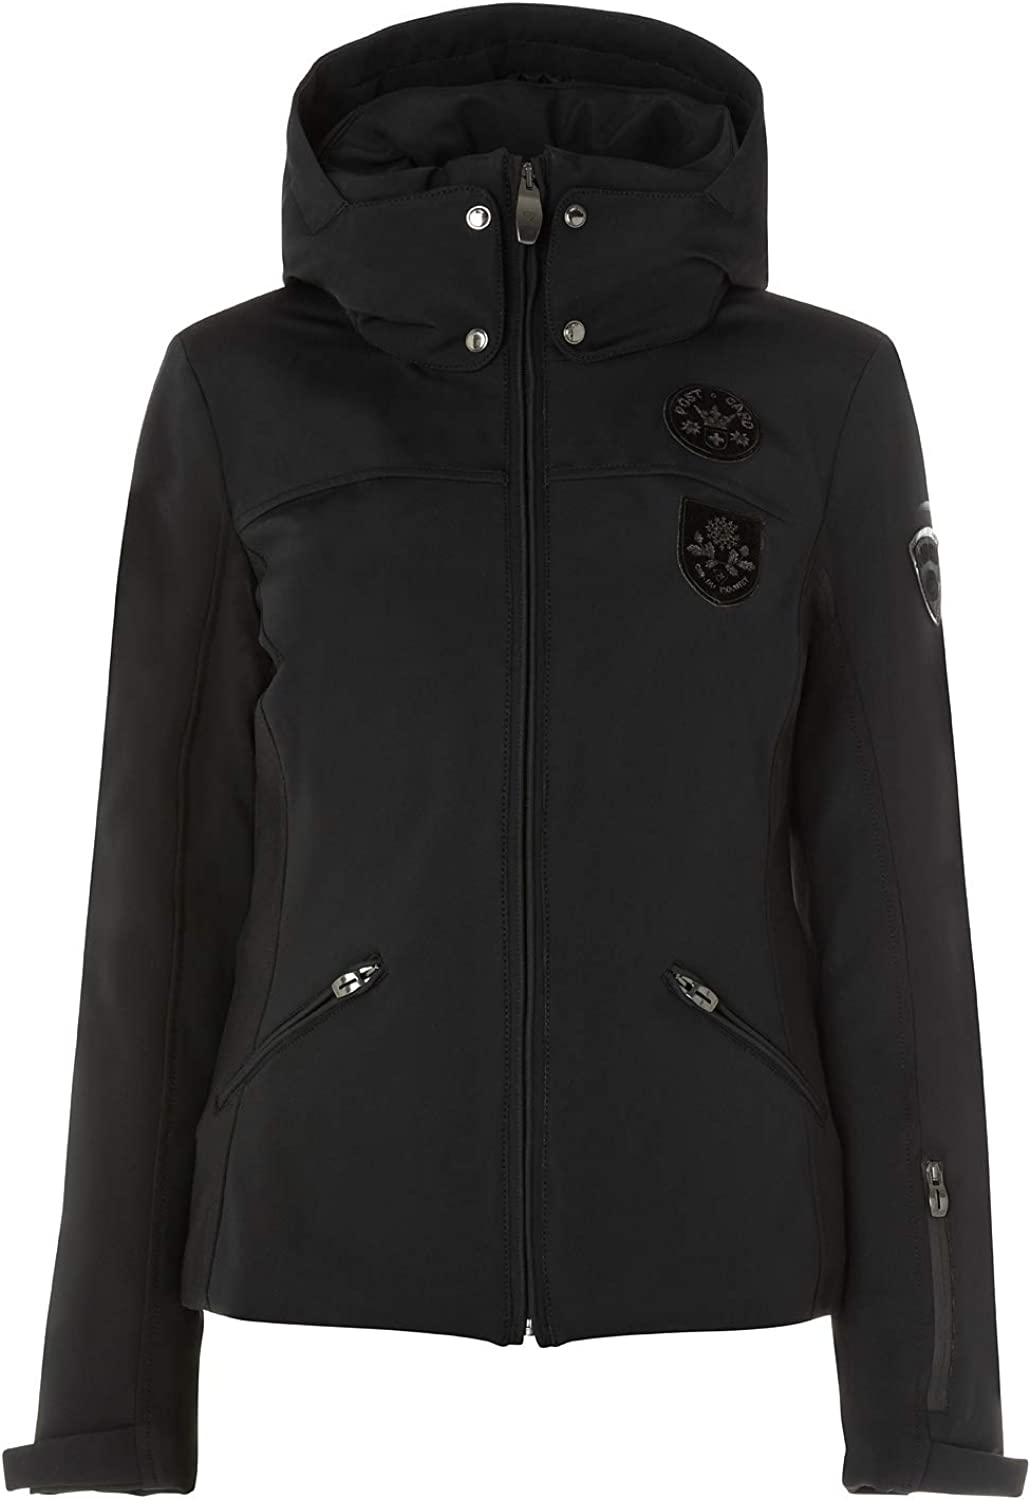 Post Card Women's Technical Jacket in Opaque